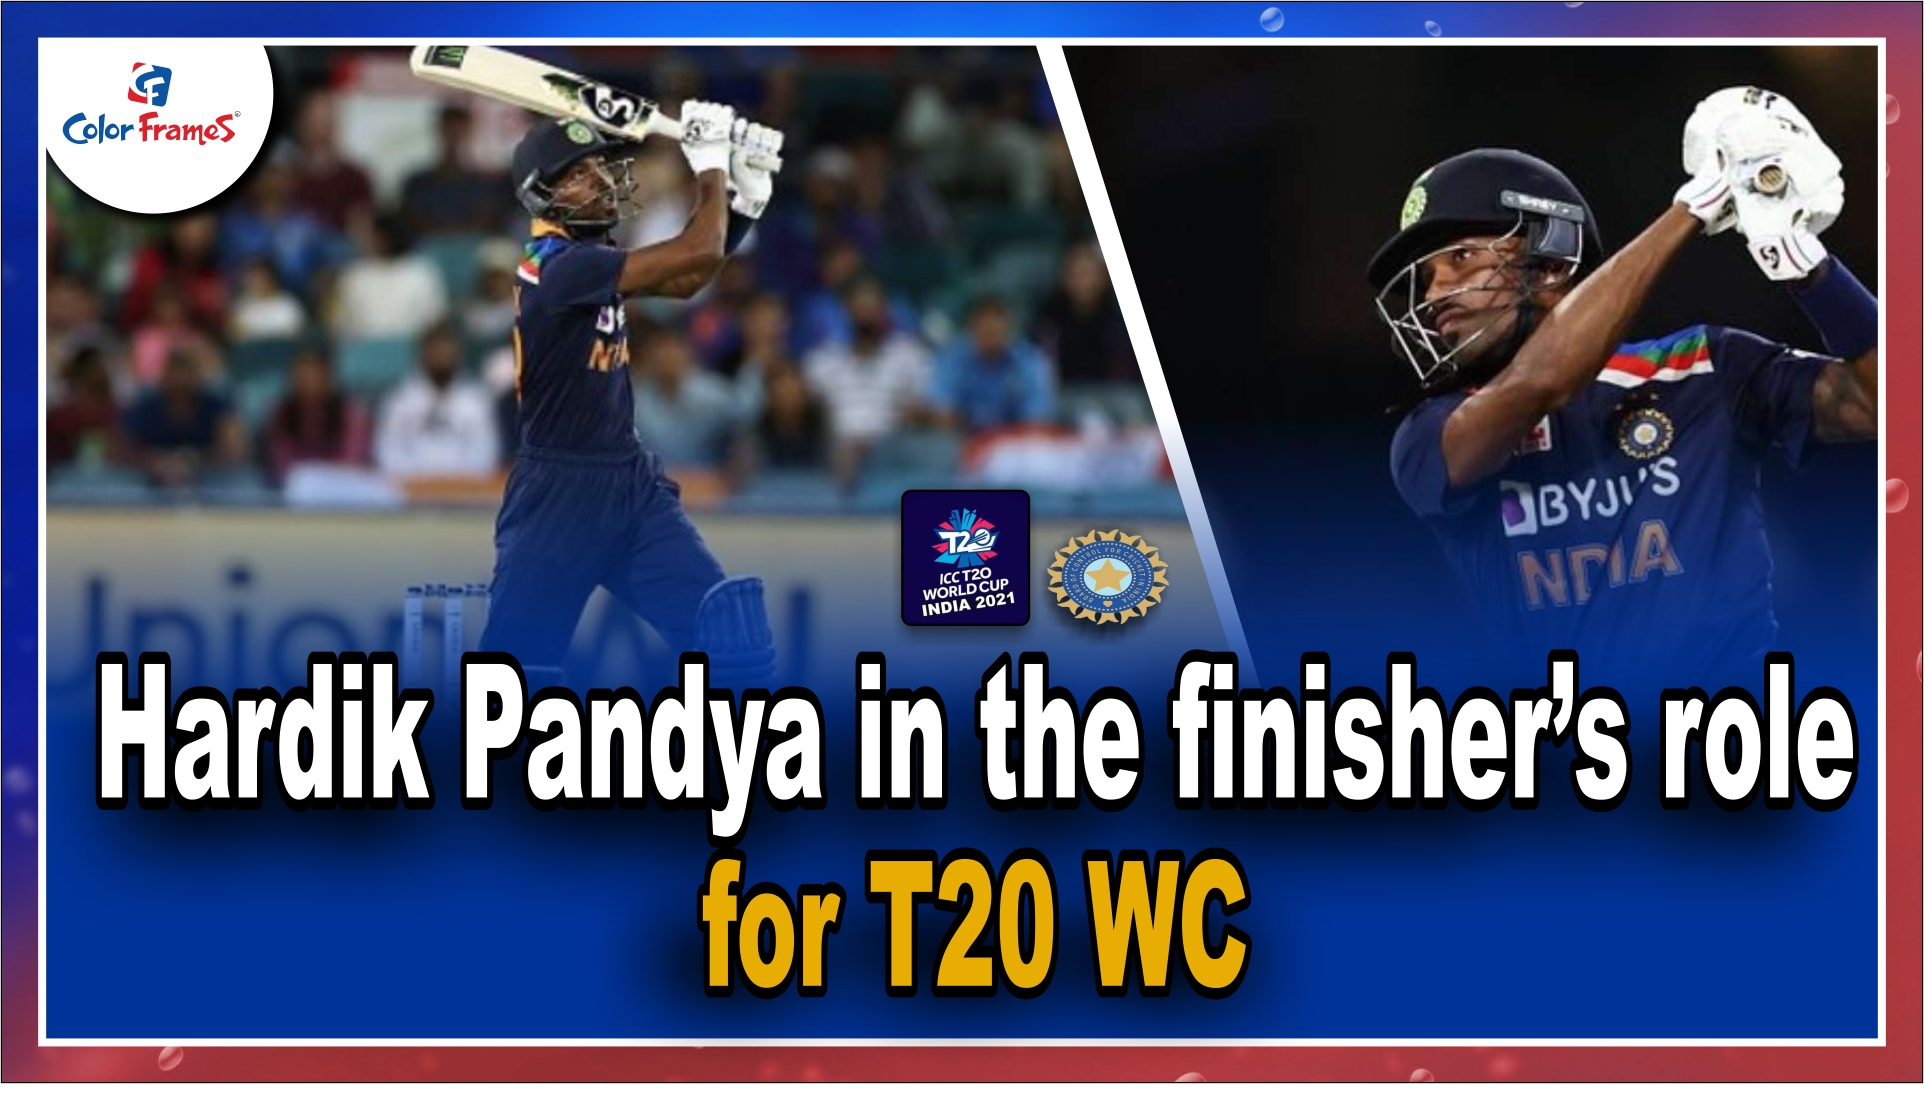 Hardik Pandya in the finisher's role for T20 WC